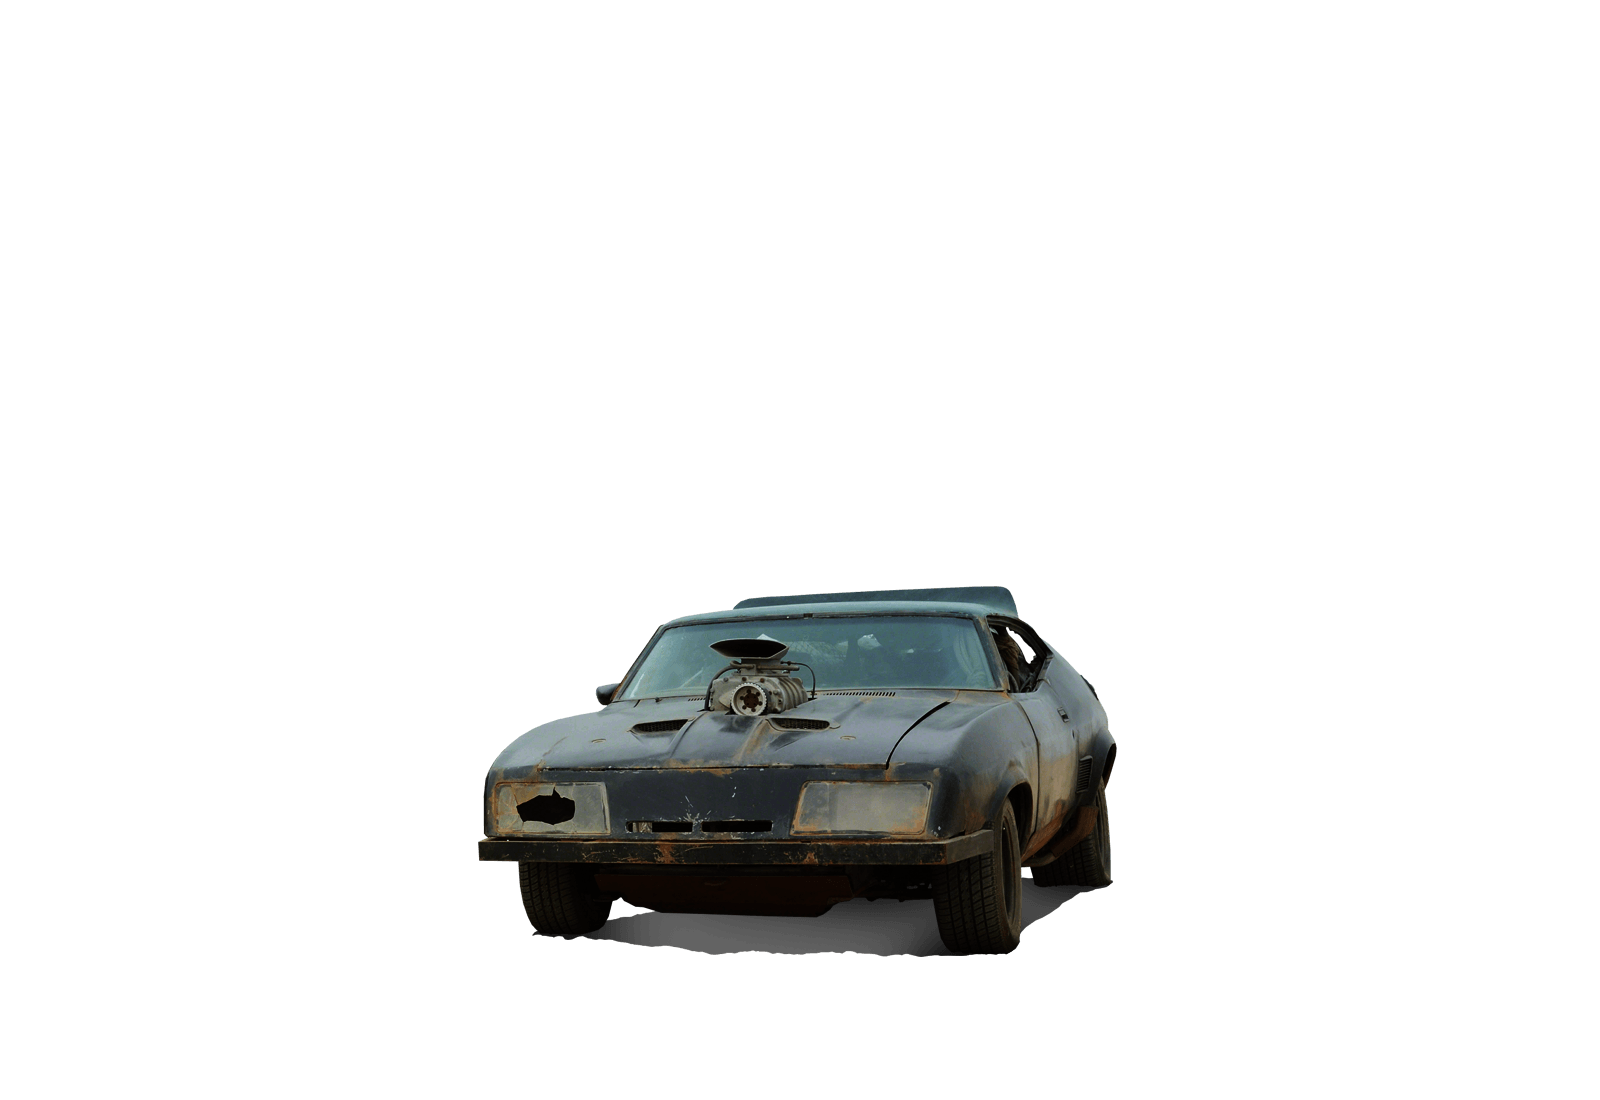 Http Vehicleshowcase Madmaxmovie Com Images Gallery Front Car15 Png Mad Max Fury Road Car Max